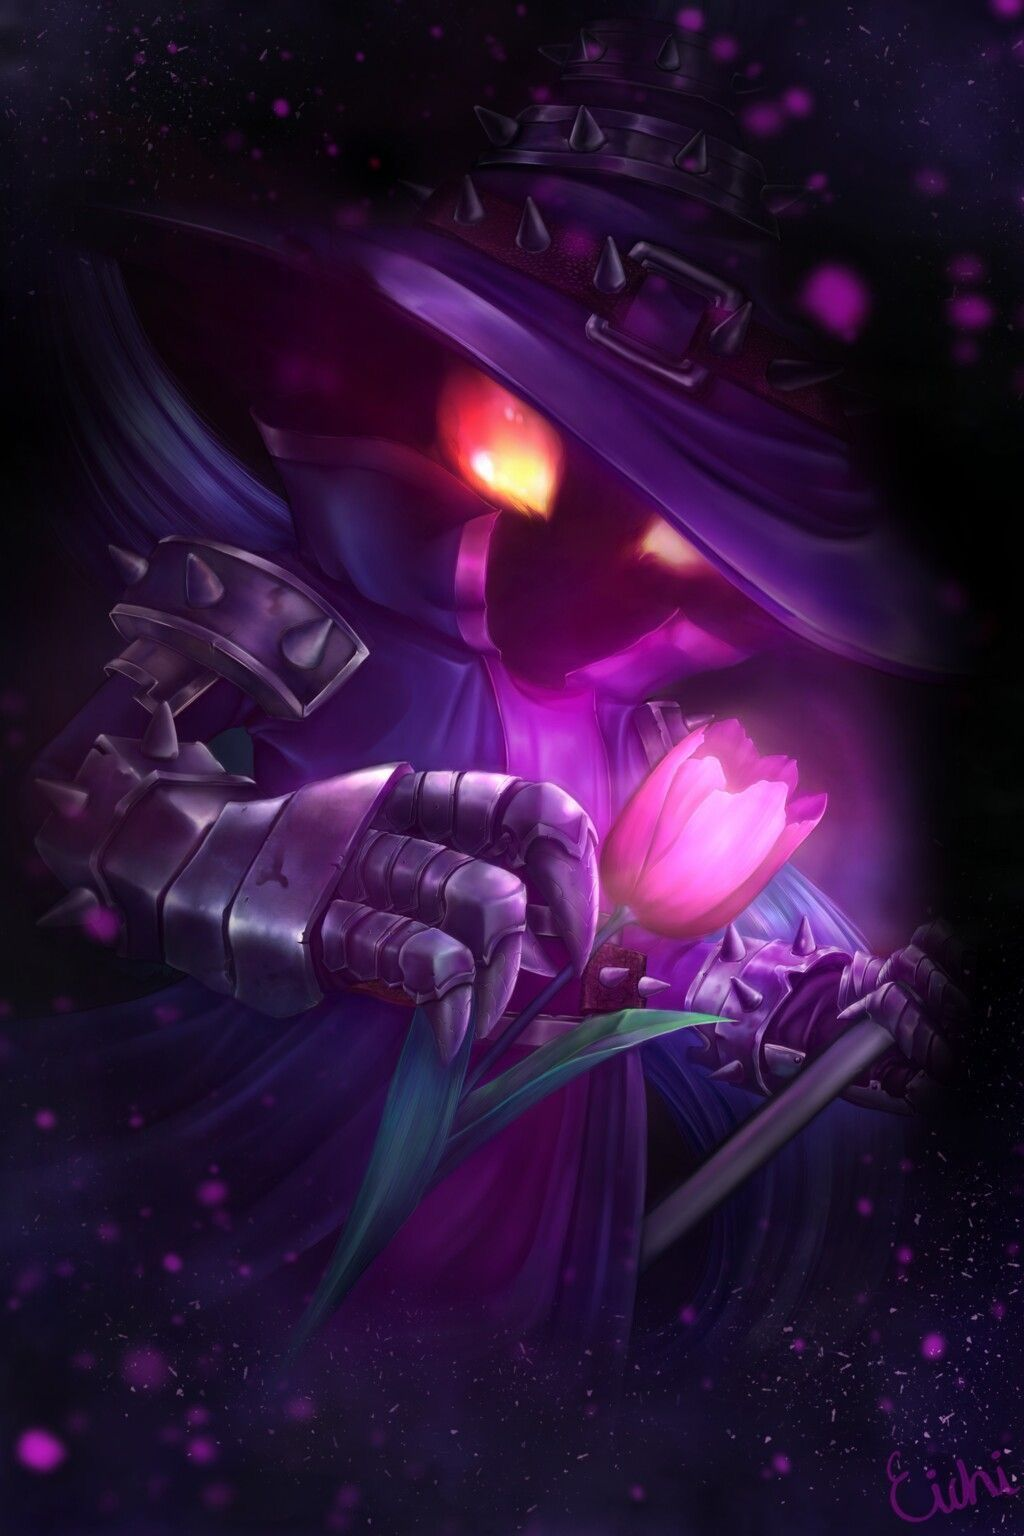 Pin By Jesus Cabera On League Of Legends Lol League Of Legends Champions League Of Legends League Of Legends